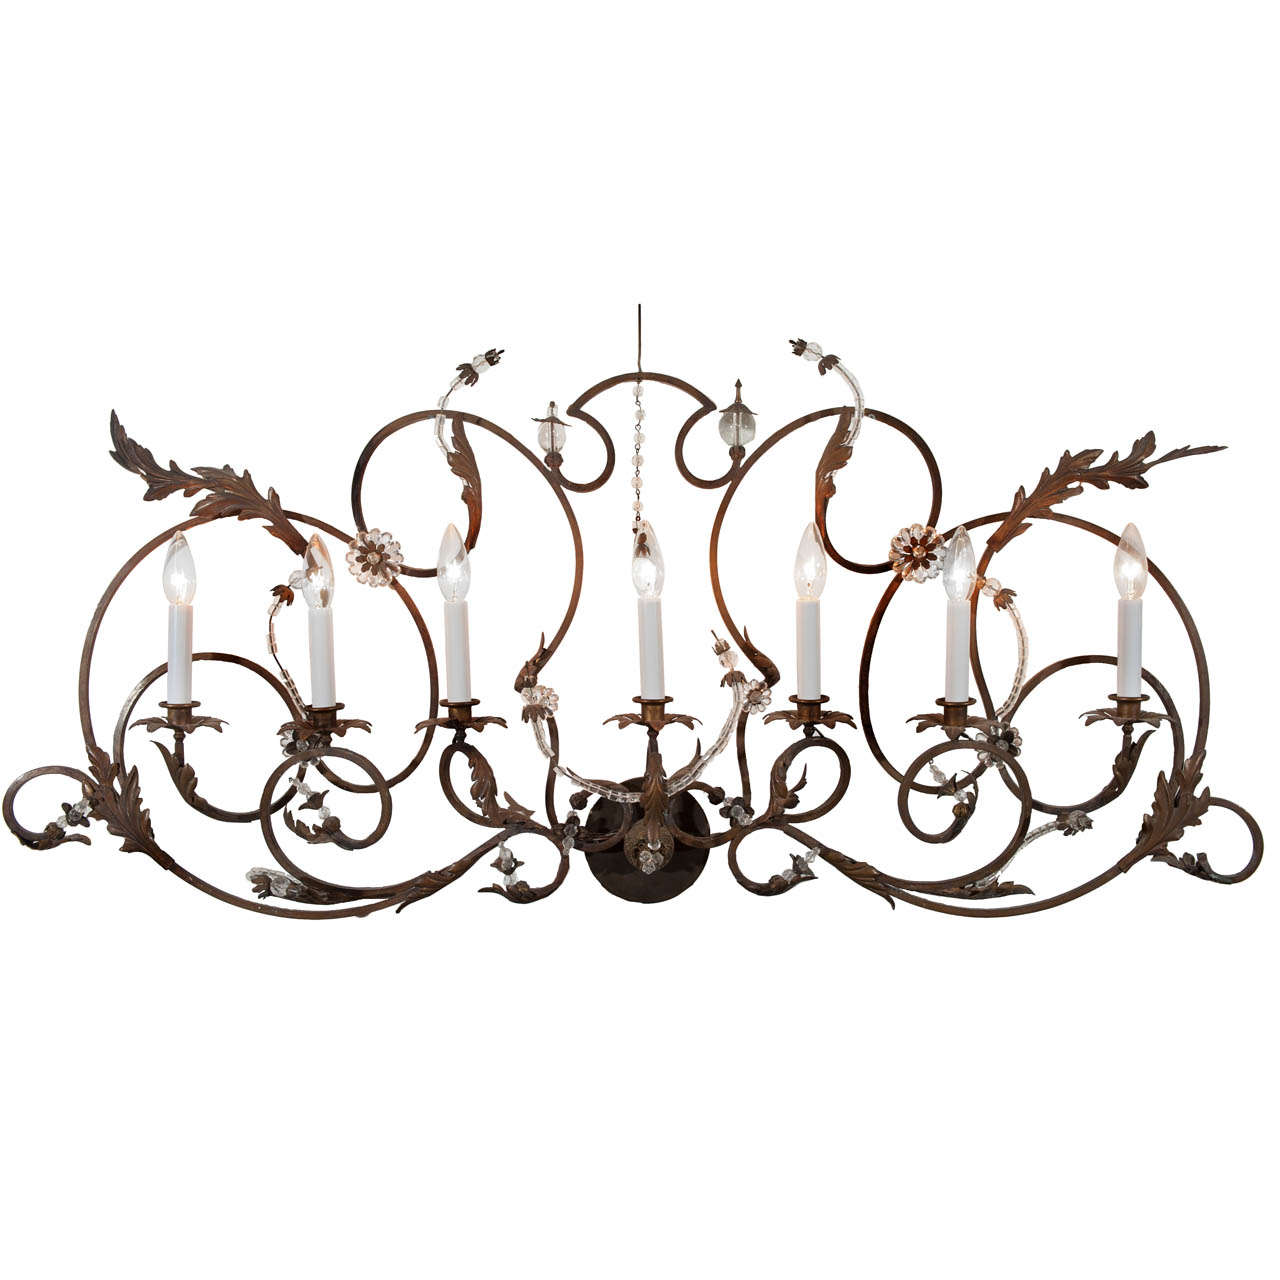 Get The Look Overscale Lighting: Singular Overscale 19th Century French Country Style